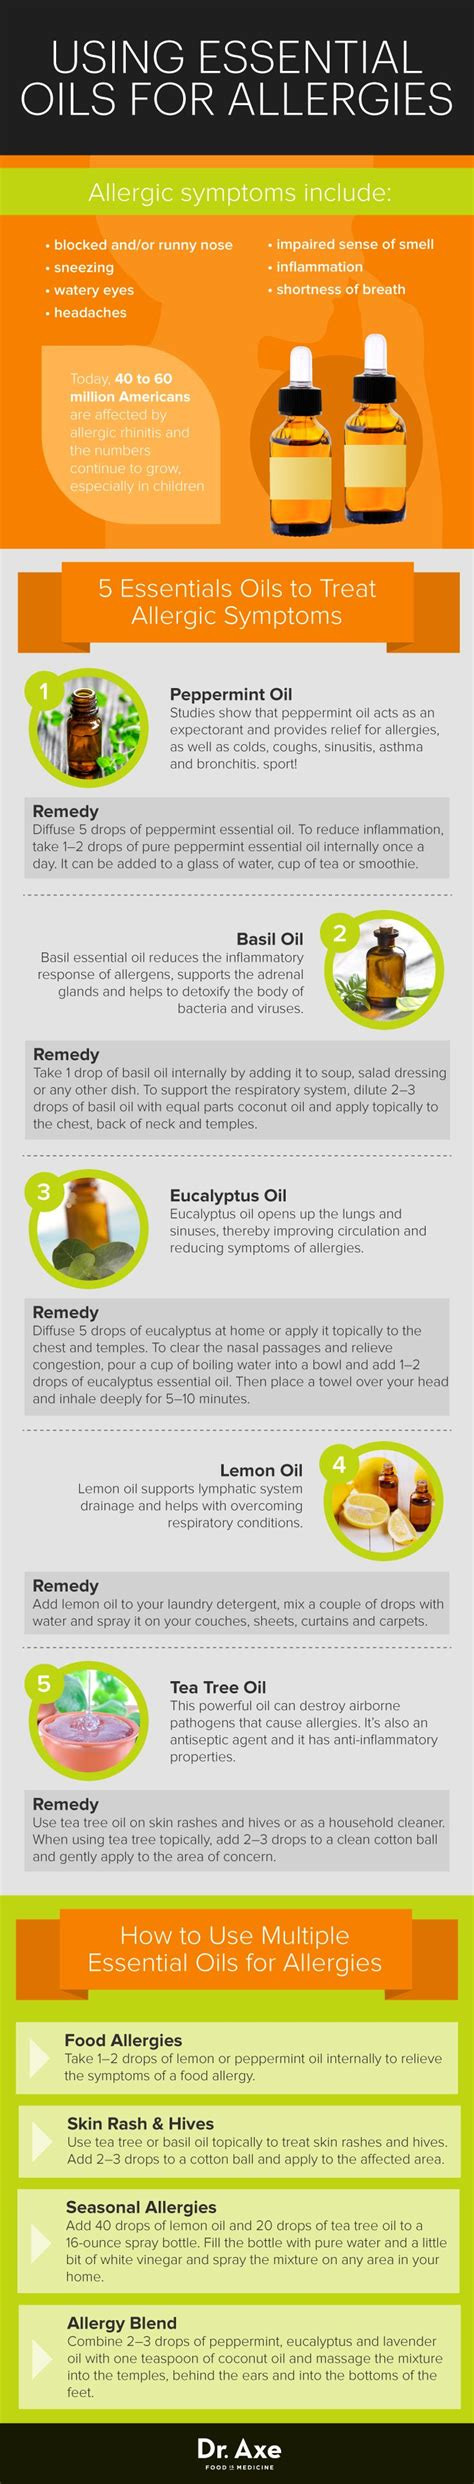 essential oils for allergies best essential oils for treating allergies infographic